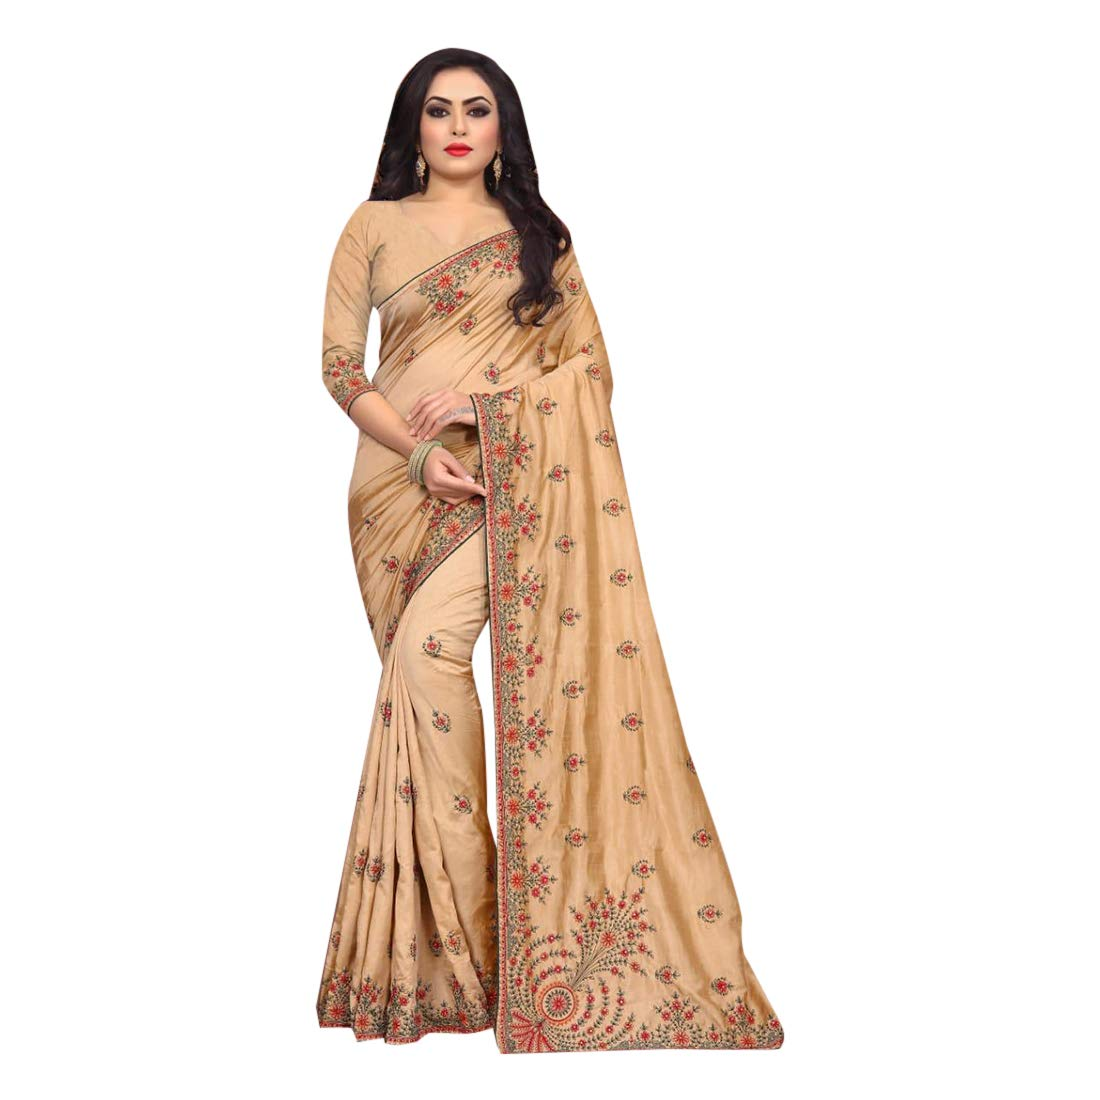 Beige Indian Rich Silk Sari with Stylish Blouse for Women Festive Party wear Designer Saree 7580